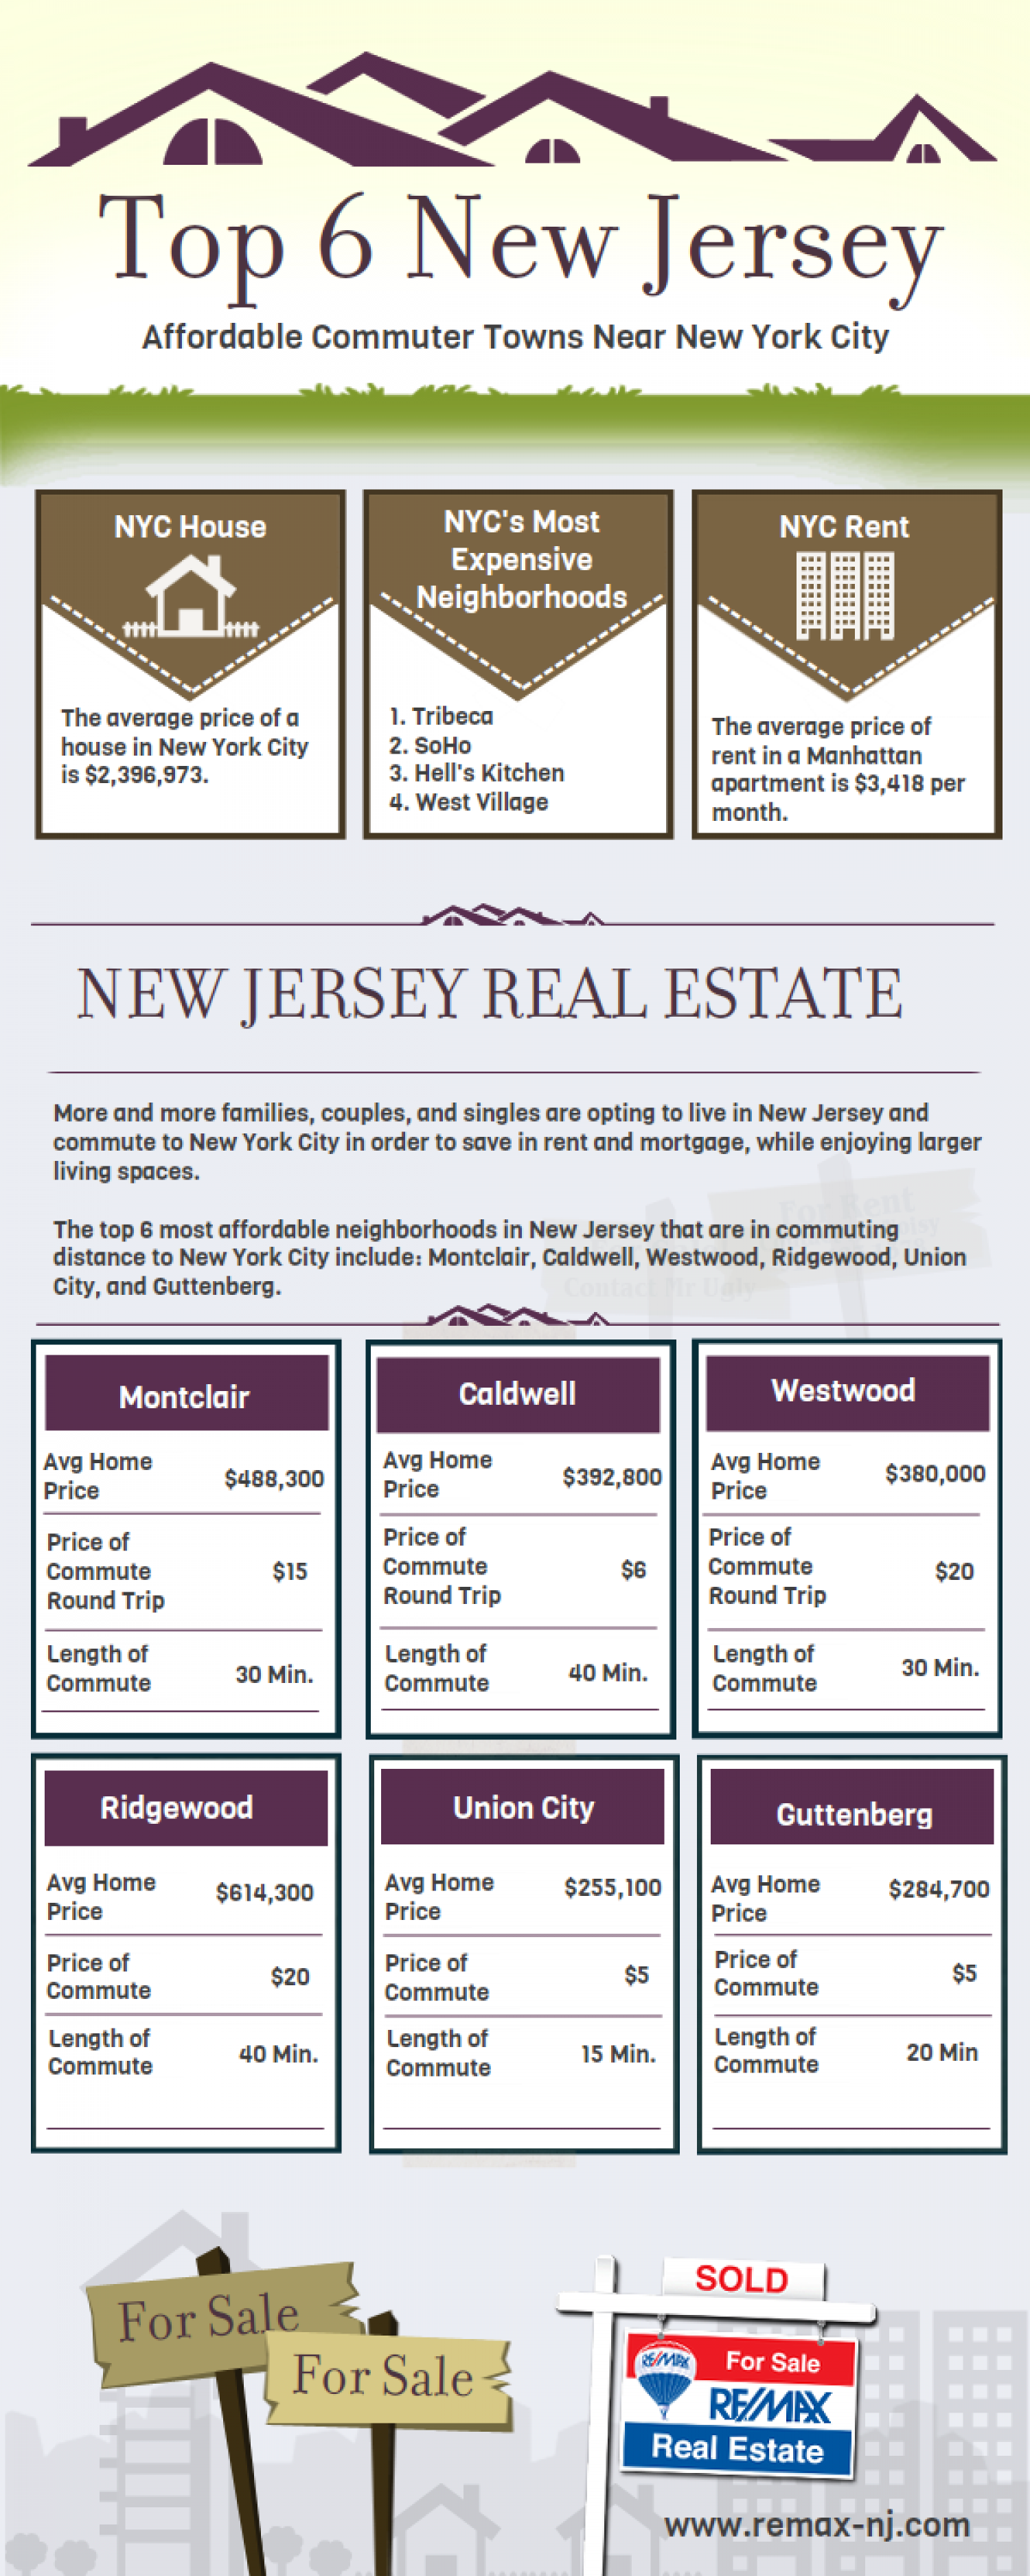 Top 6 New Jersey Affordable Commuter Towns Near NYC Infographic